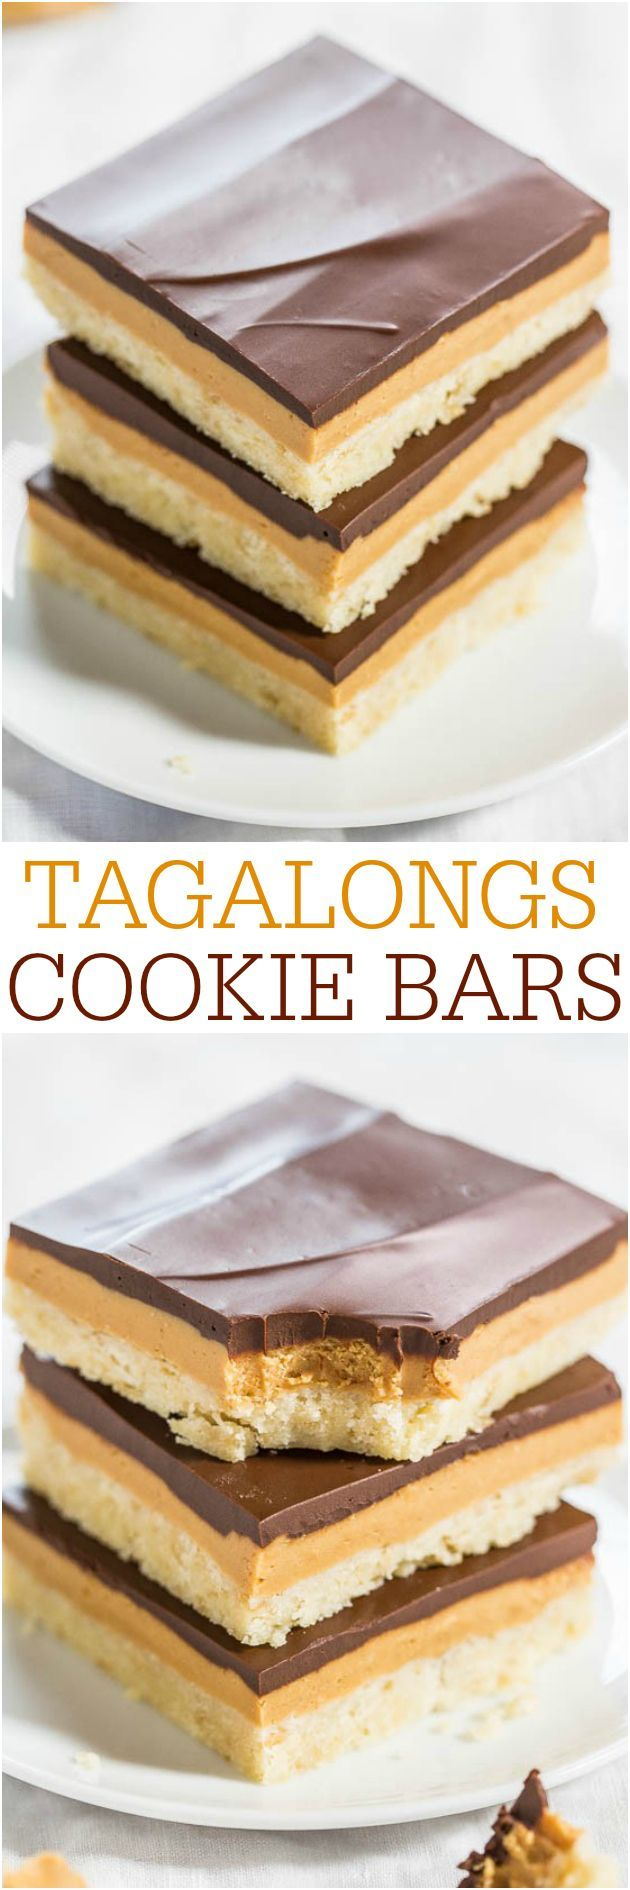 cheap air jordans websites Tagalongs Cookie Bars   Say hello to year round Girl Scout Cookie Season with these delish bars  All the flavors of the classic cookies in easy bar form